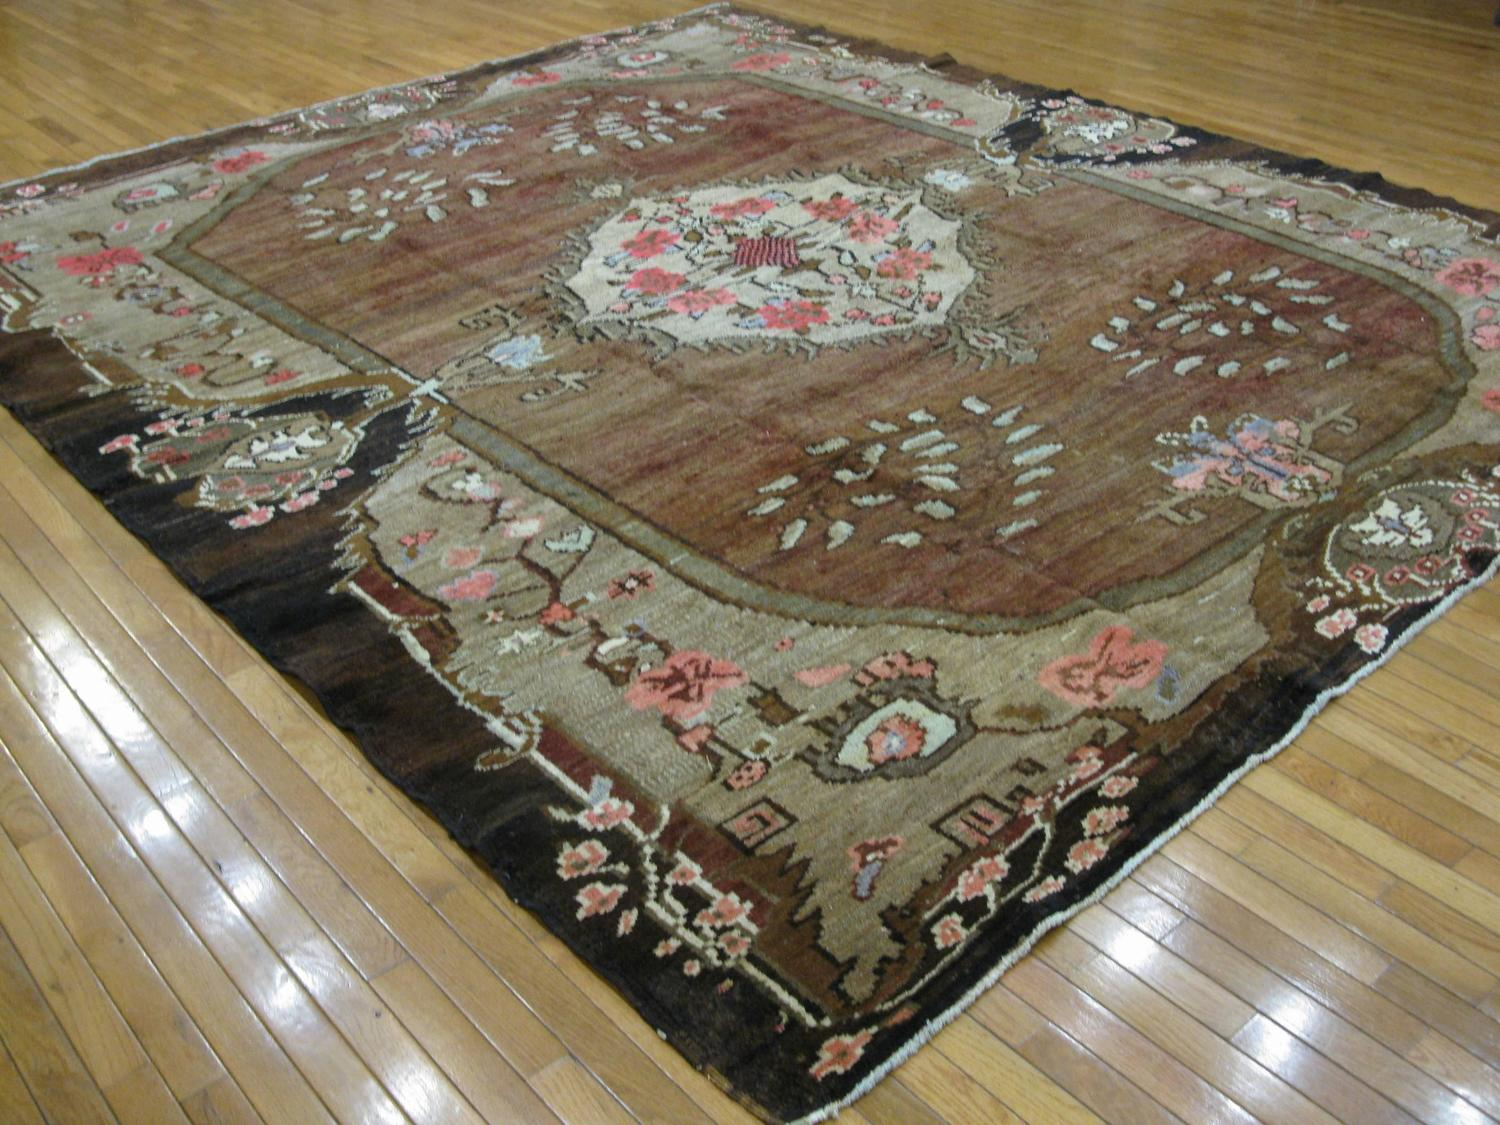 Vintage Large Room Size Turkish Rug For Sale At 1stdibs. Miniature Christmas Decorations. Art For Kids Rooms. Cheap Hotel Rooms Clearwater Beach Florida. Southern Living Home Decor. Sunflower Decorations. Rustic Home Decor. Ugly Sweater Decorations. Decorative Letters For Walls